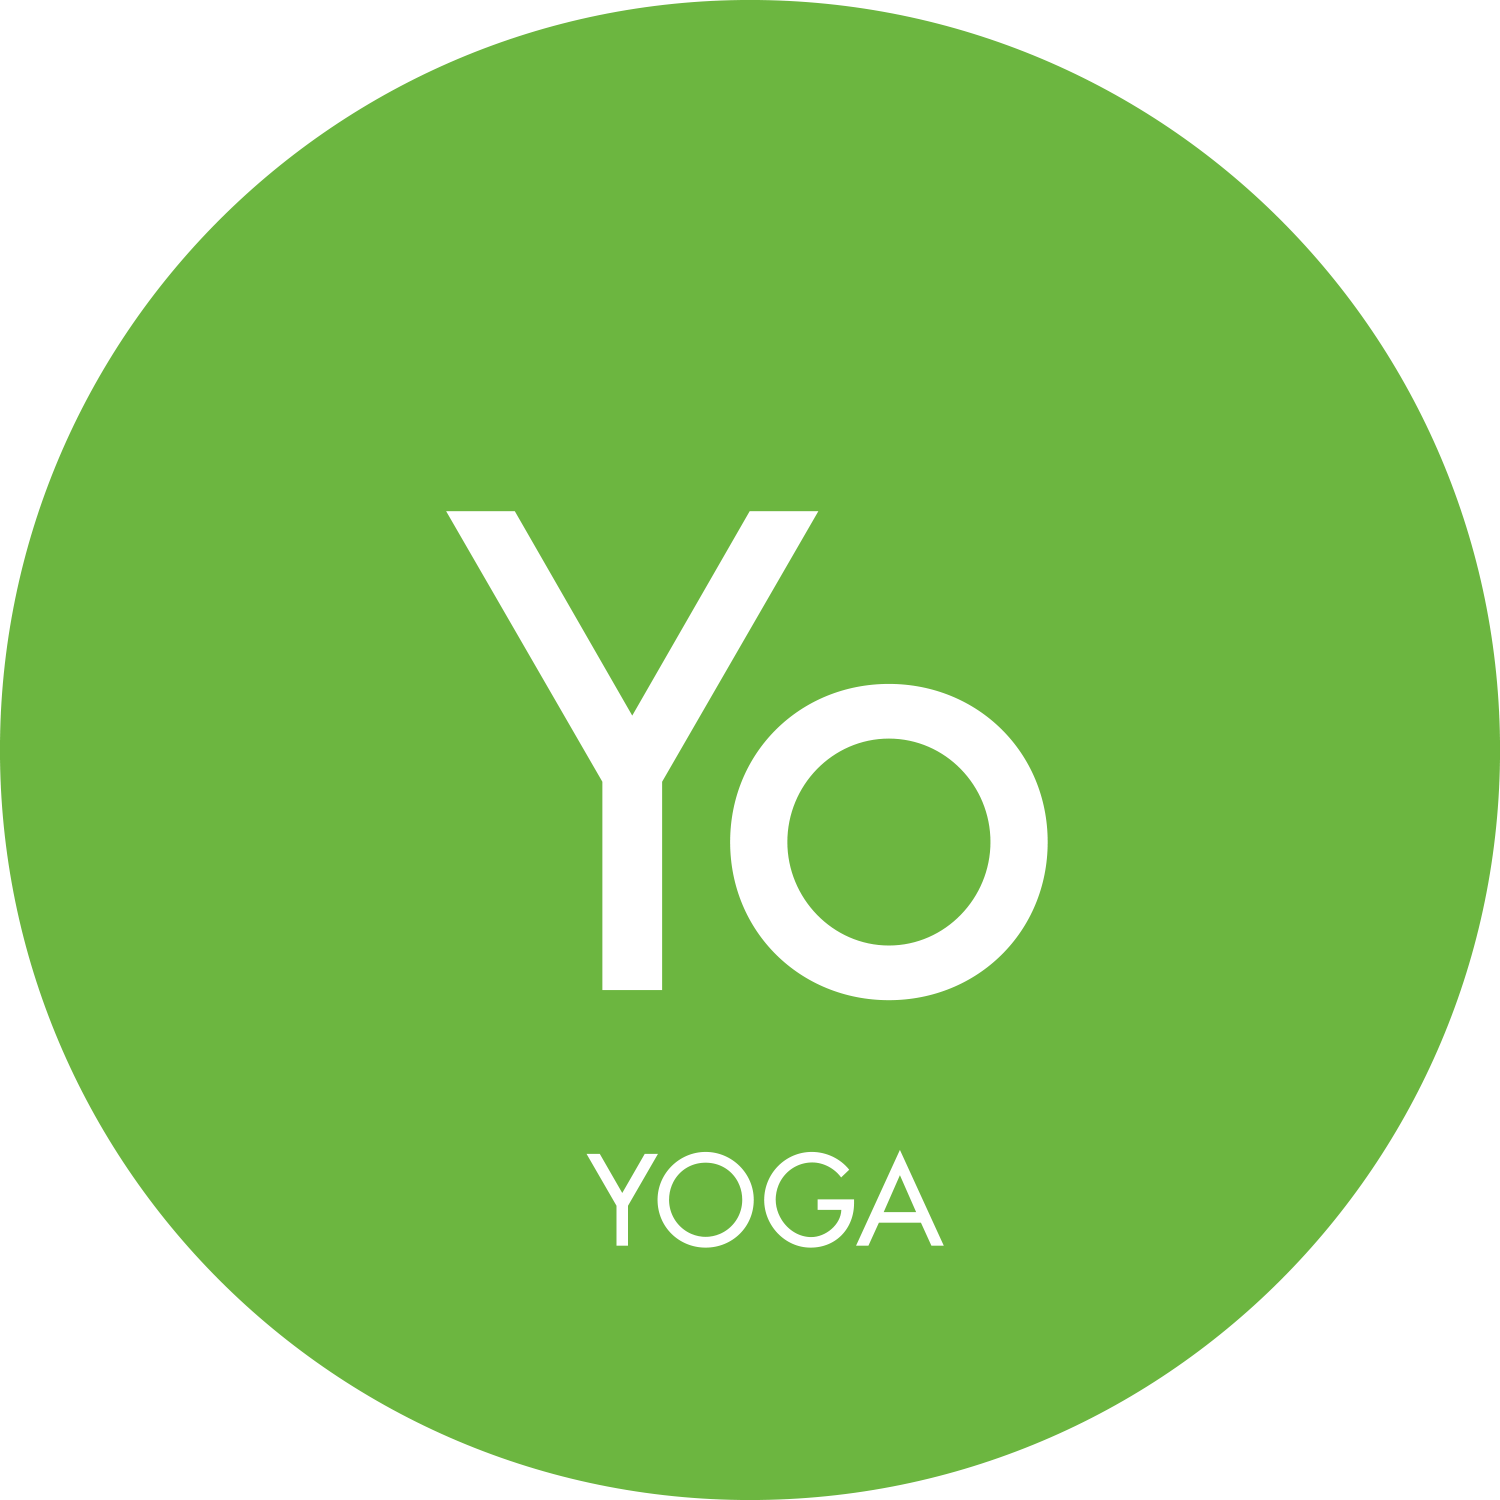 yoga, yoga poses, yoga beginners, yoga near me, yoga classes near me